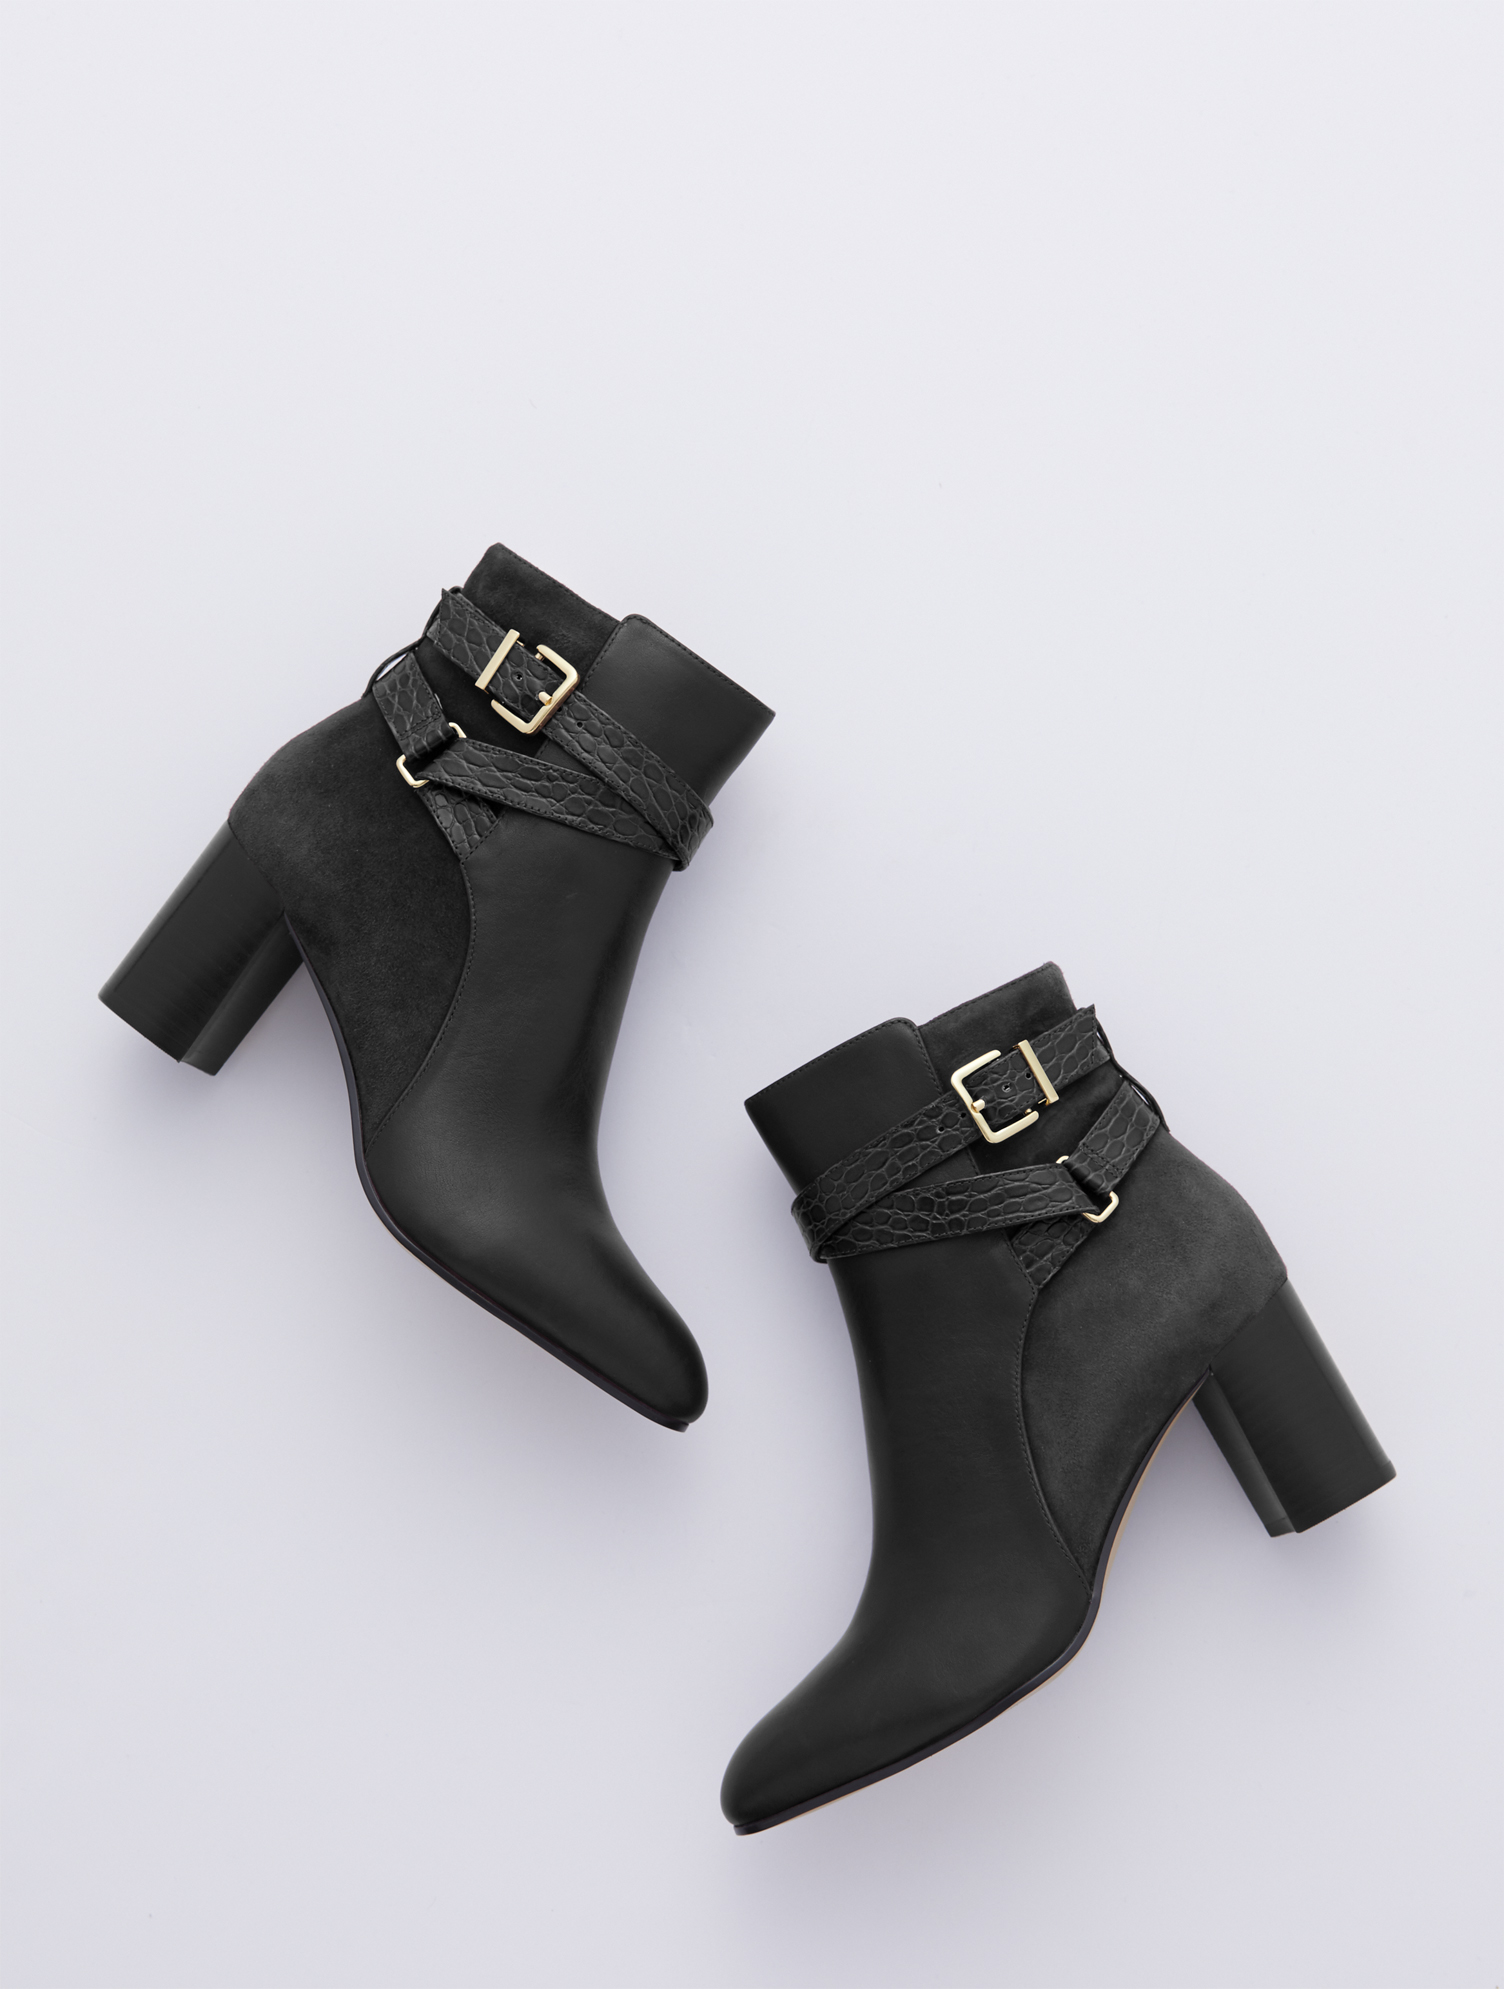 Versatile leather booties with a sleek silhouette, feminine flare heel and almond-shaped toe. Inside-step zip allows for easy on and off. Features 3 inches heelAlmond toe3MM Memory foam footbedImported Material: 100% Leather Simone Vachetta Ankle Boots - Black - 11M Talbots